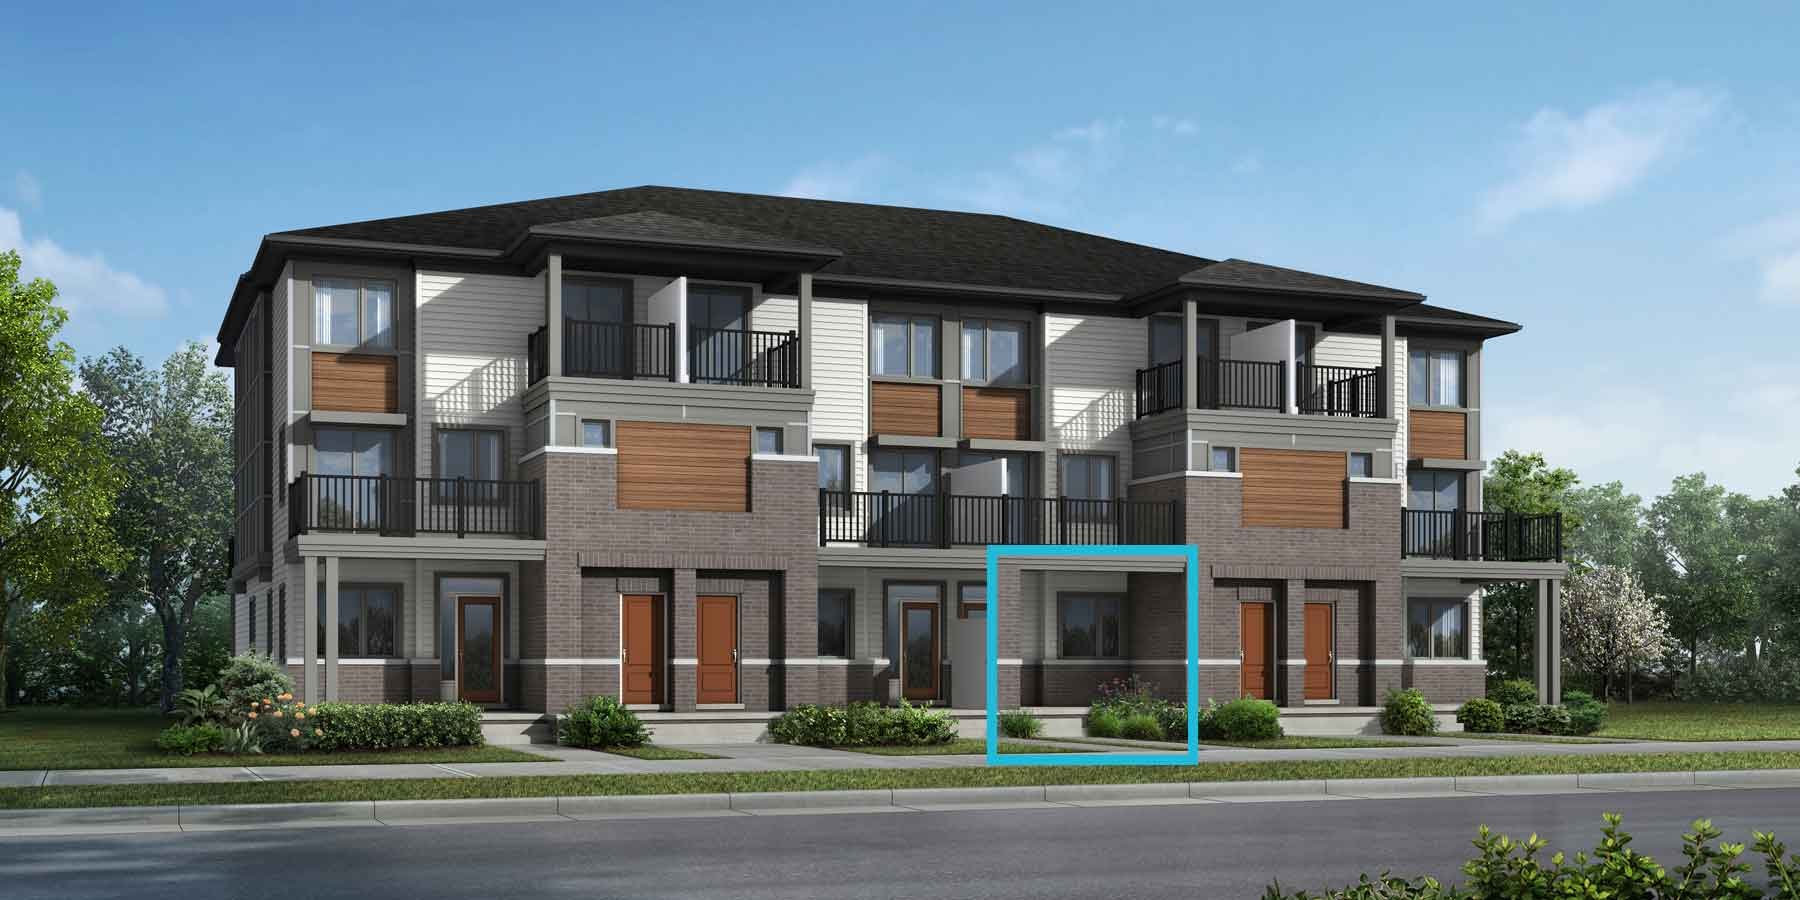 Blackstone South TownHomes in Kanata Ontario by Mattamy Homes